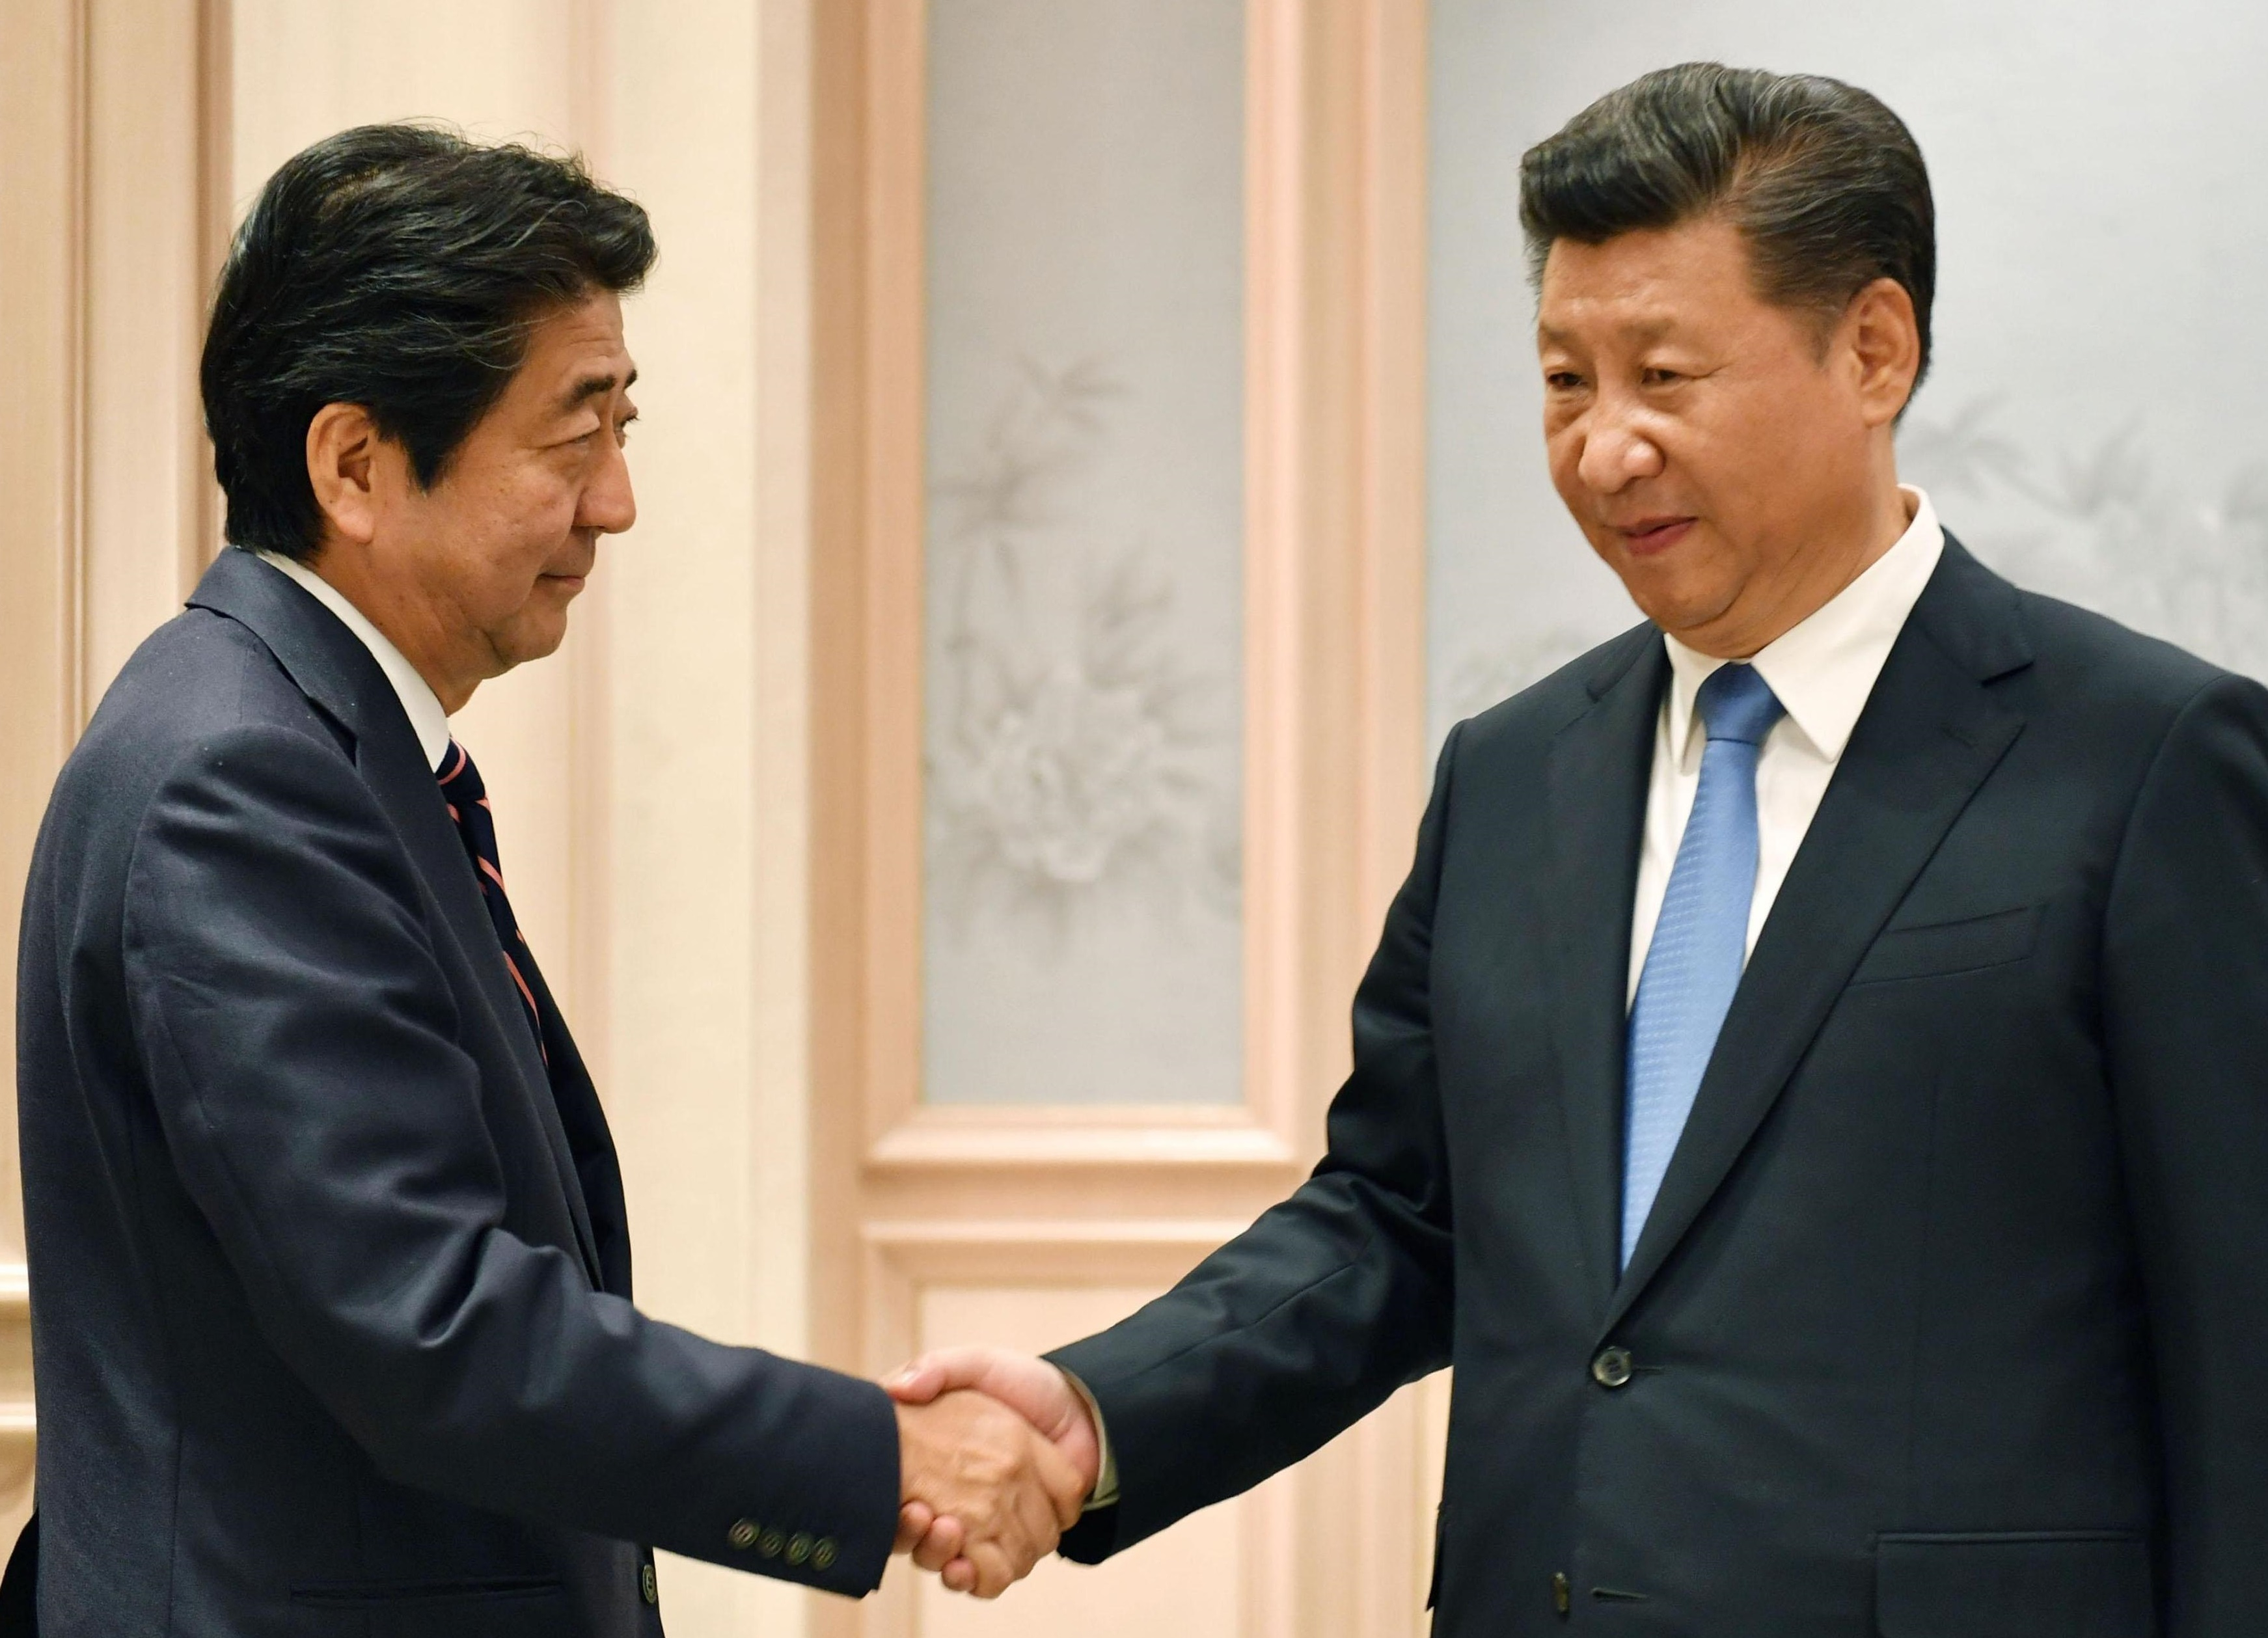 Prime Minister Shinzo Abe and Chinese President Xi Jinping get together for talks after the Group of 20 summit in Hangzhou, China, on Monday. | POOL / VIA KYODO